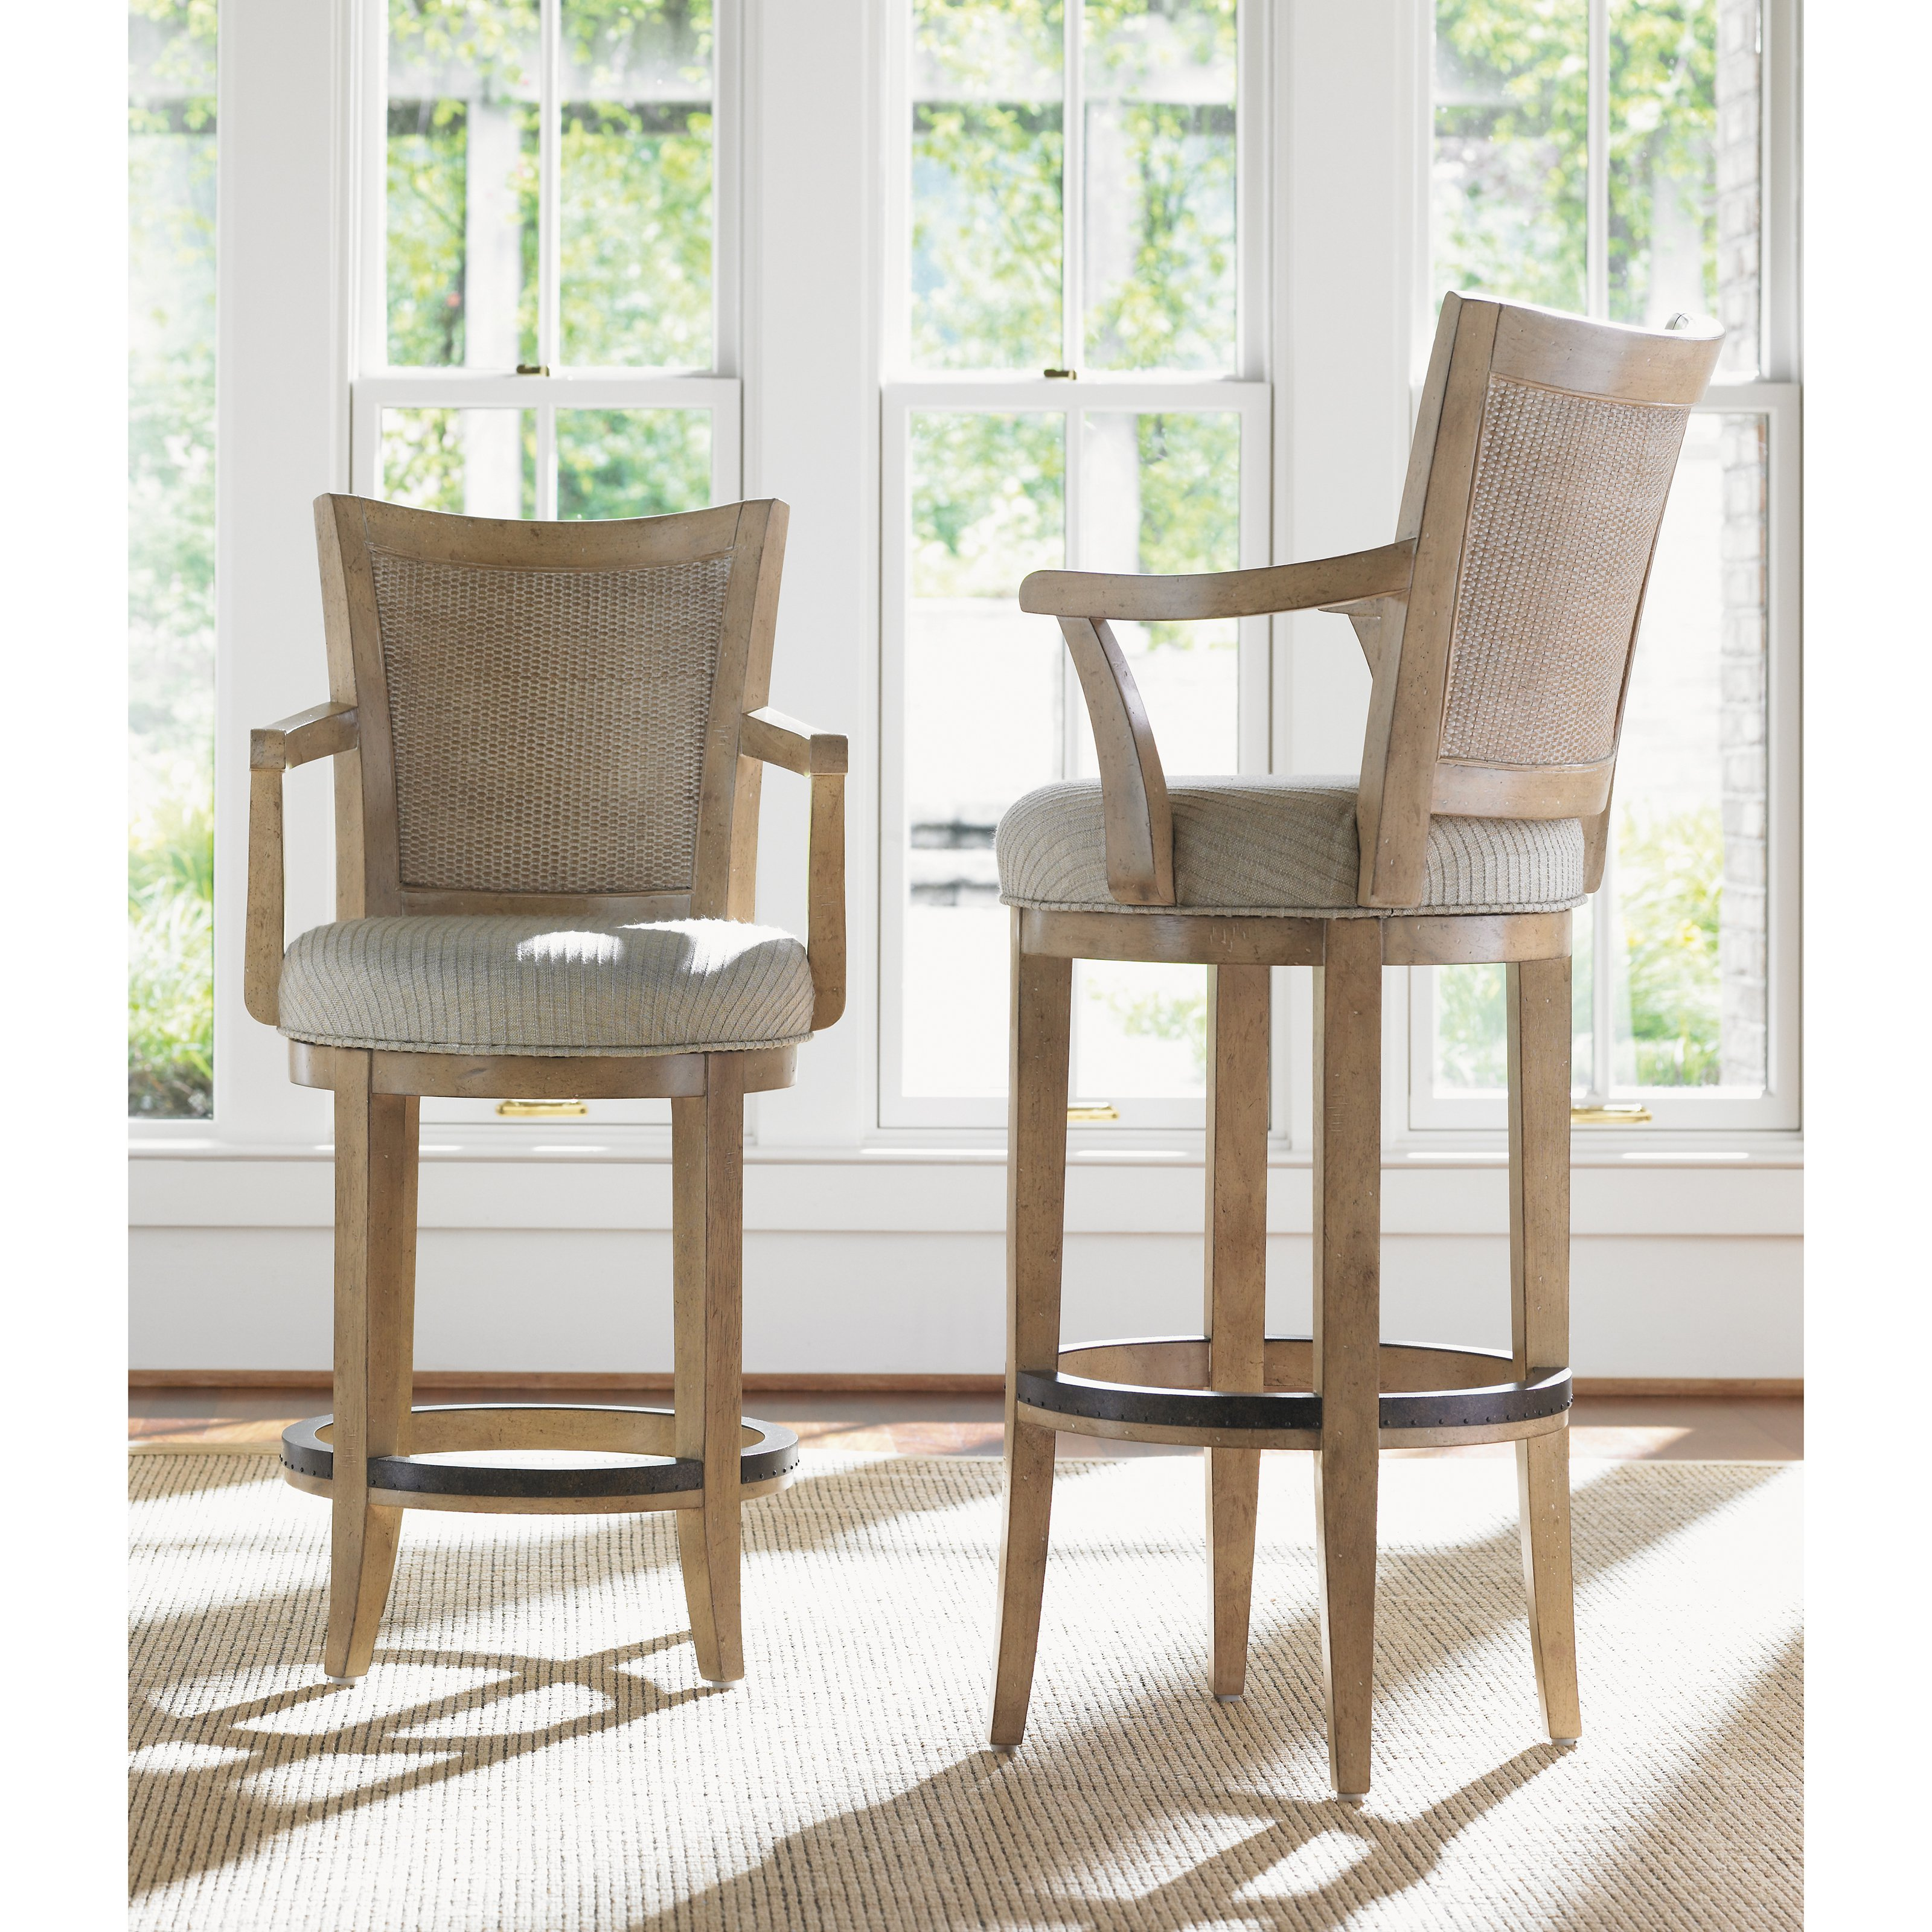 counter height swivel bar stools with arms lexington home brands monterey sands 24.5 in. carmel swivel counter NLSJCMU